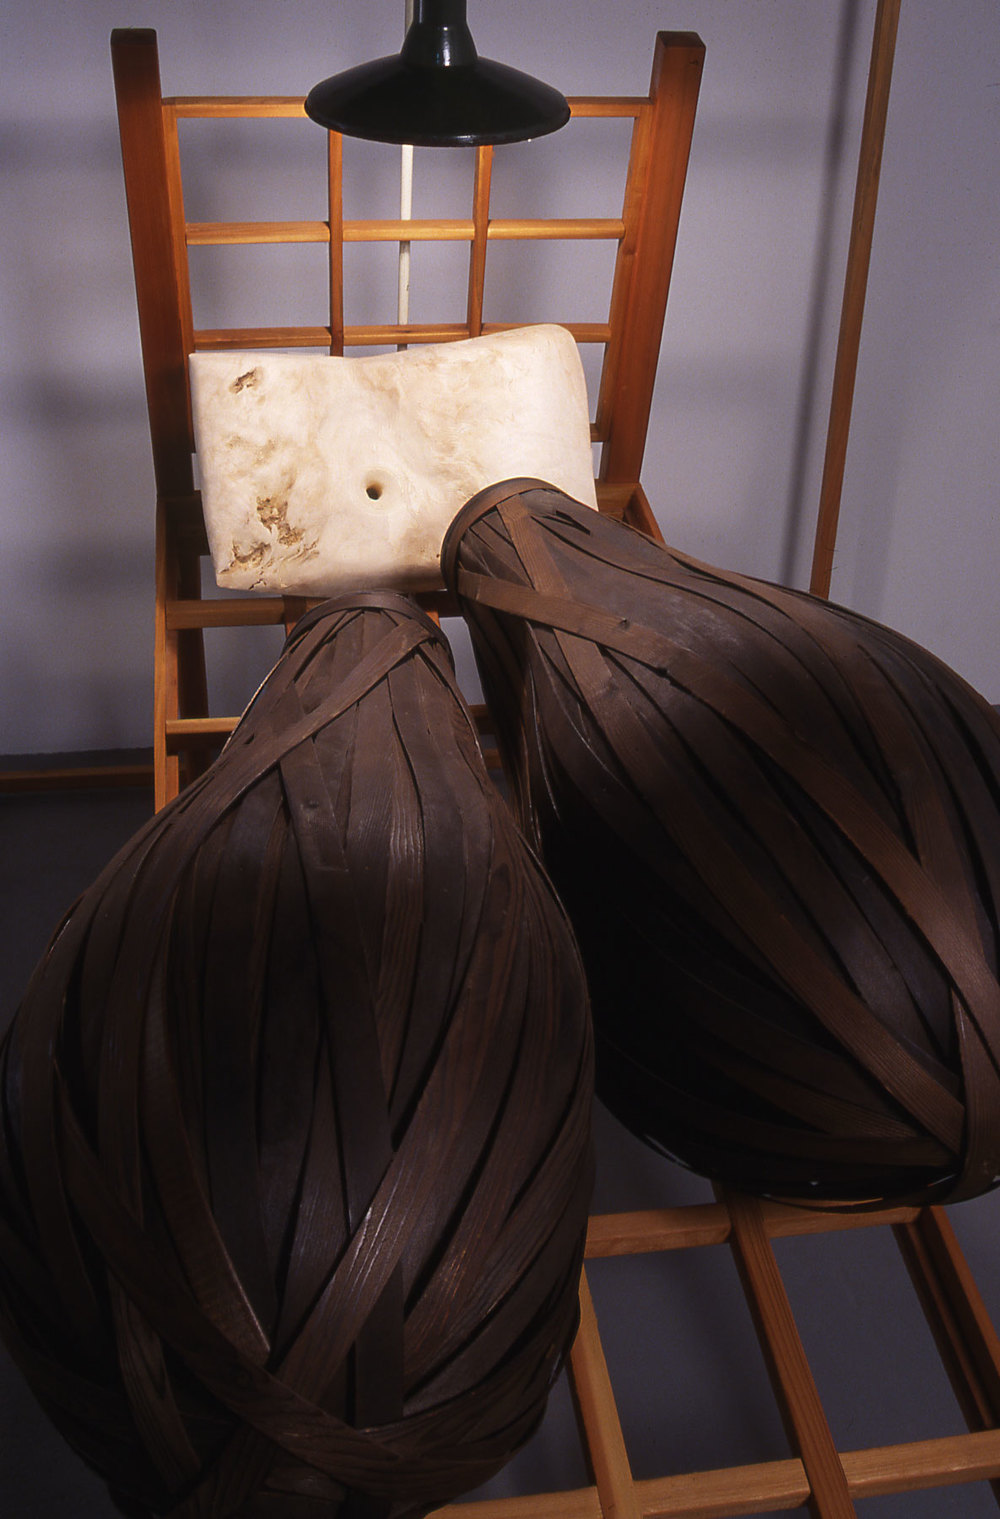 """""""Sleeping Double in a Single Bed"""", wood sculpture detail view, © Tom Gormally"""